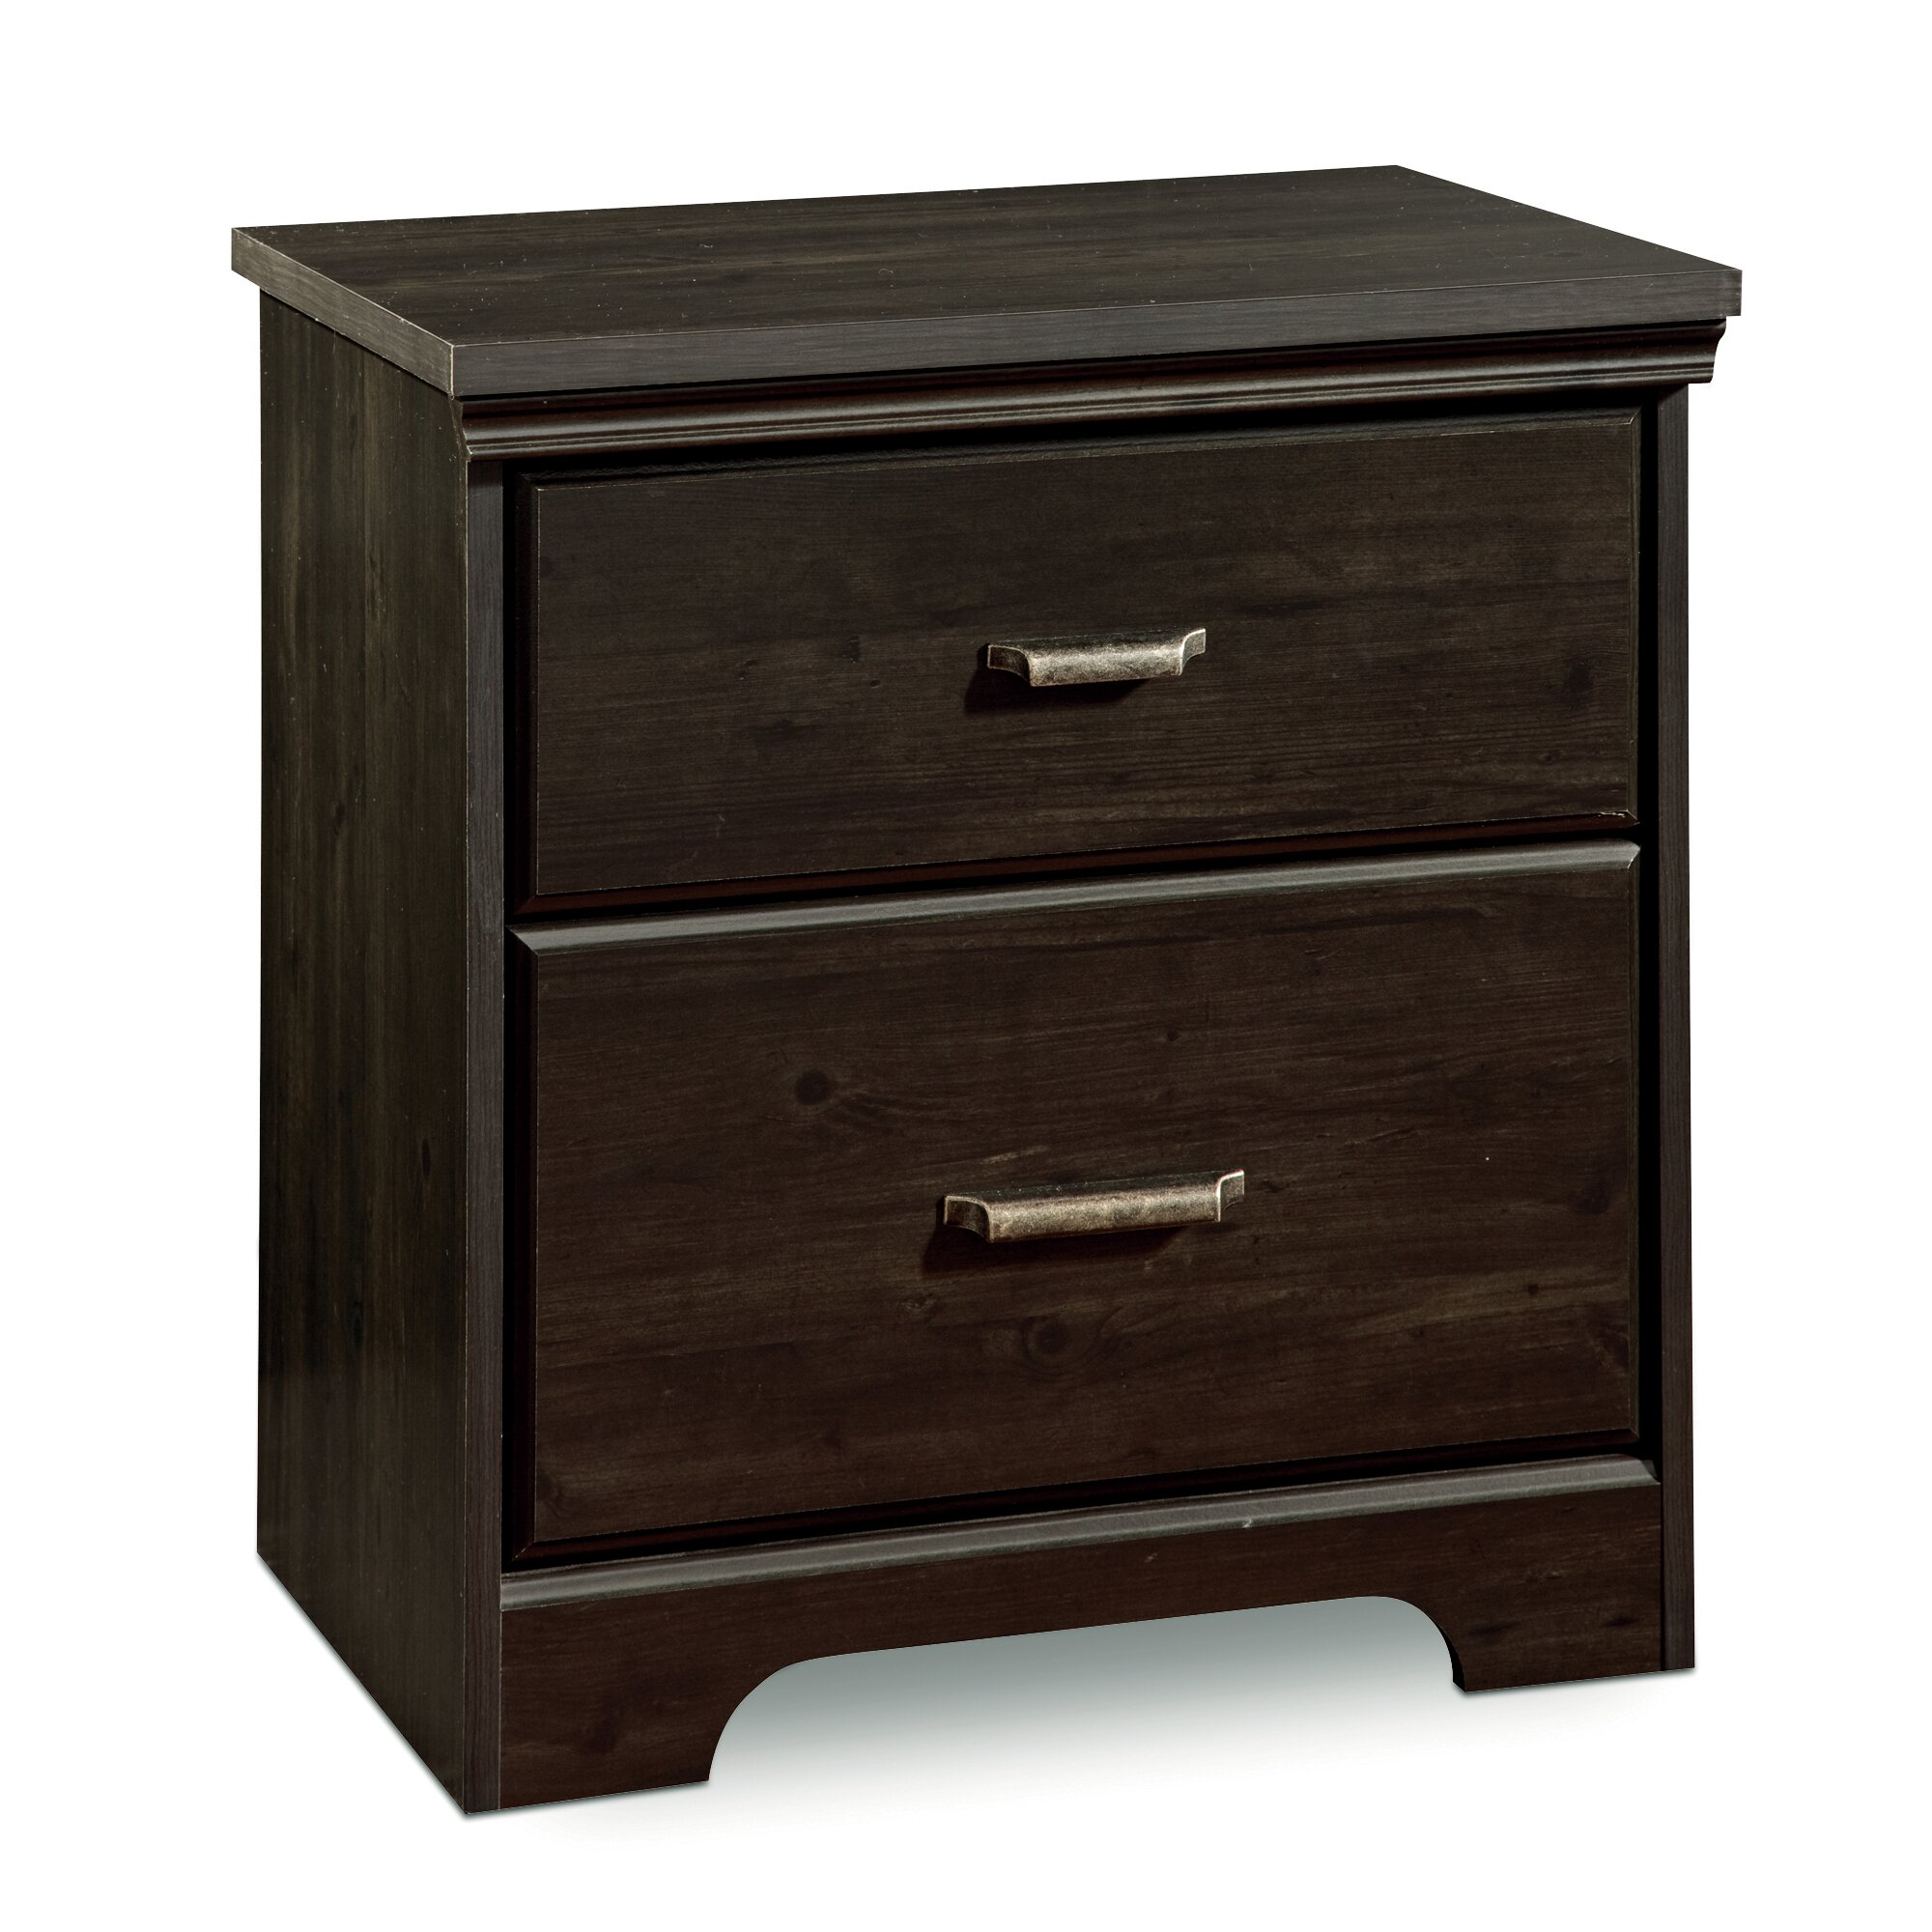 Warefair Com: South Shore Versa 2 Drawer Nightstand & Reviews